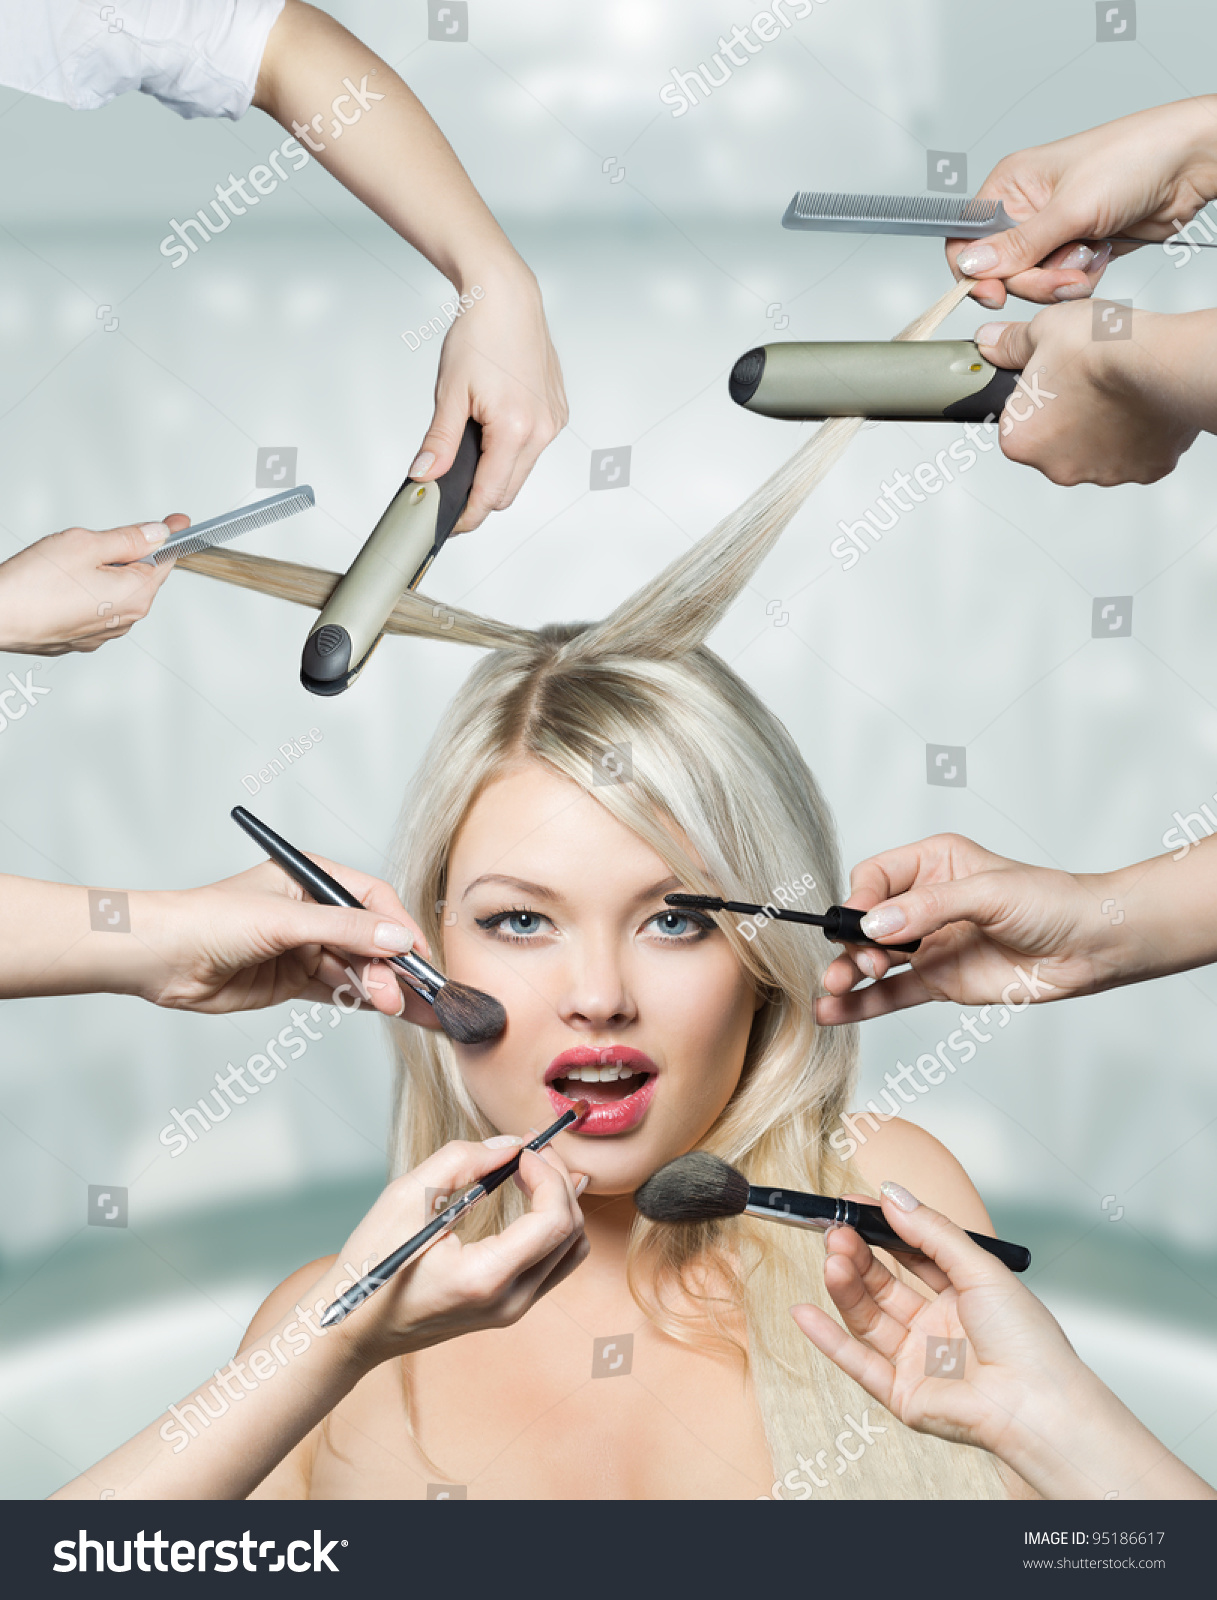 Image Result For Beauty Salon Stock Images